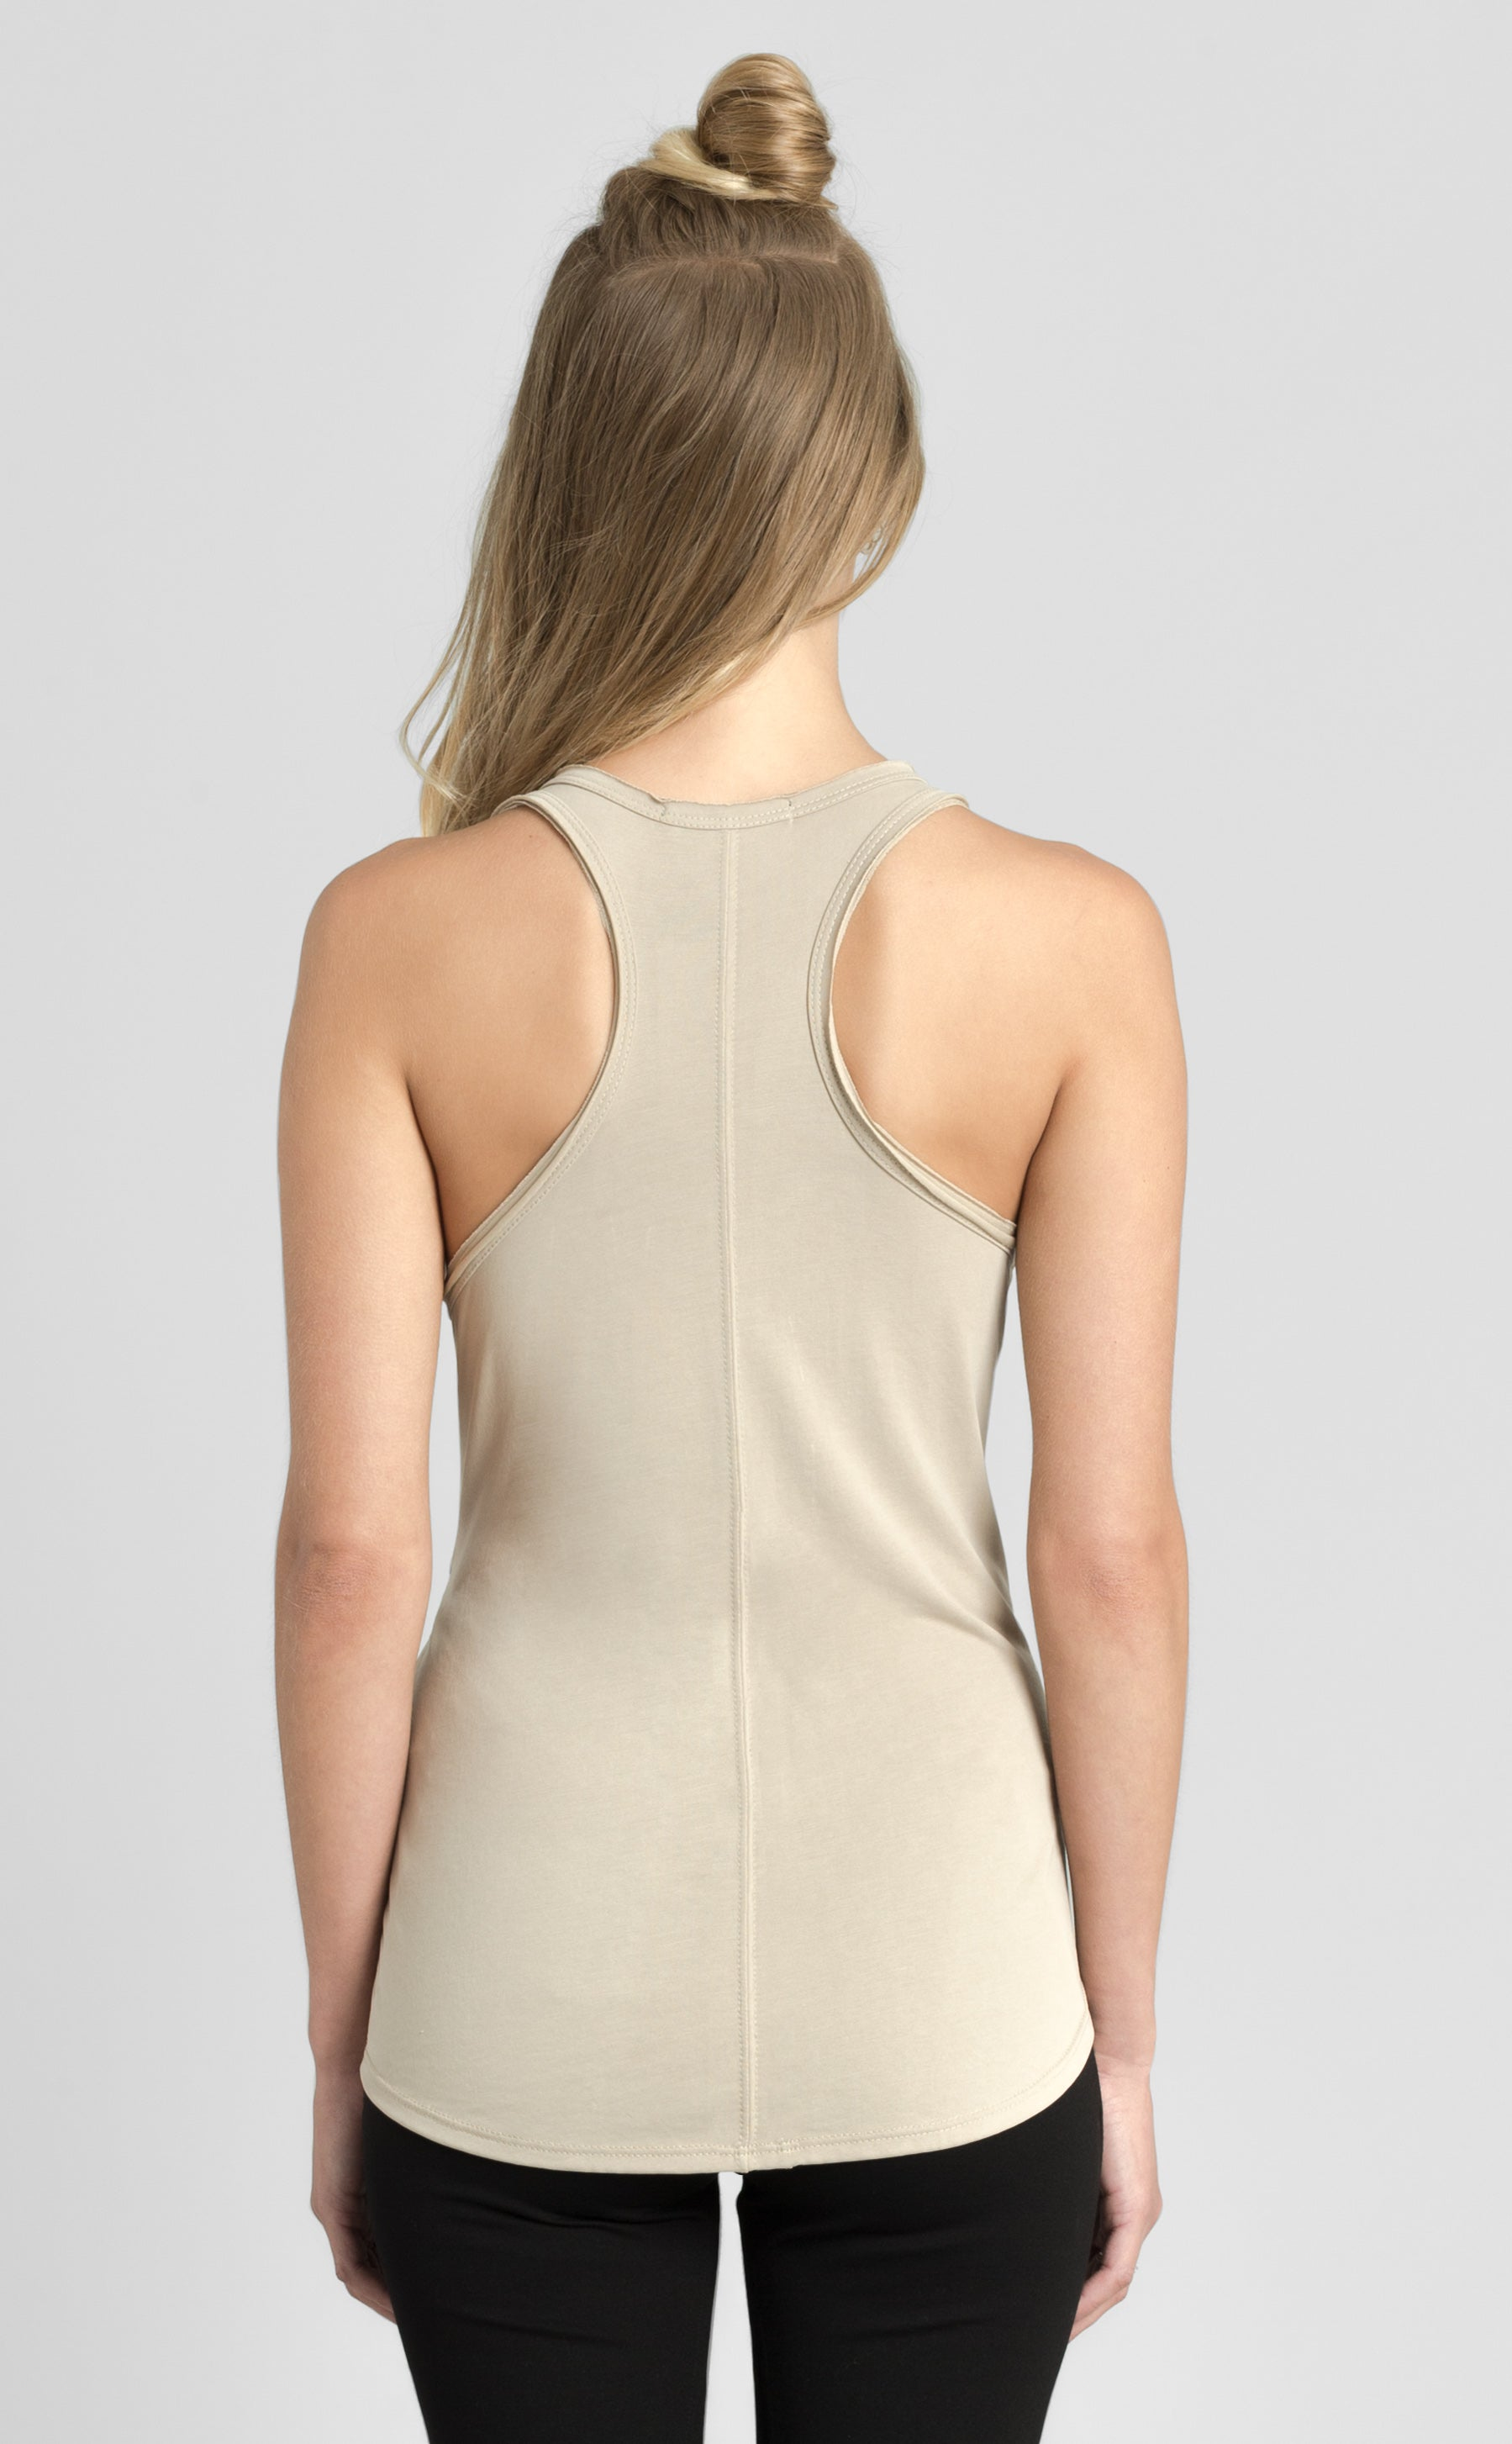 Shirred Raceback Tank Top